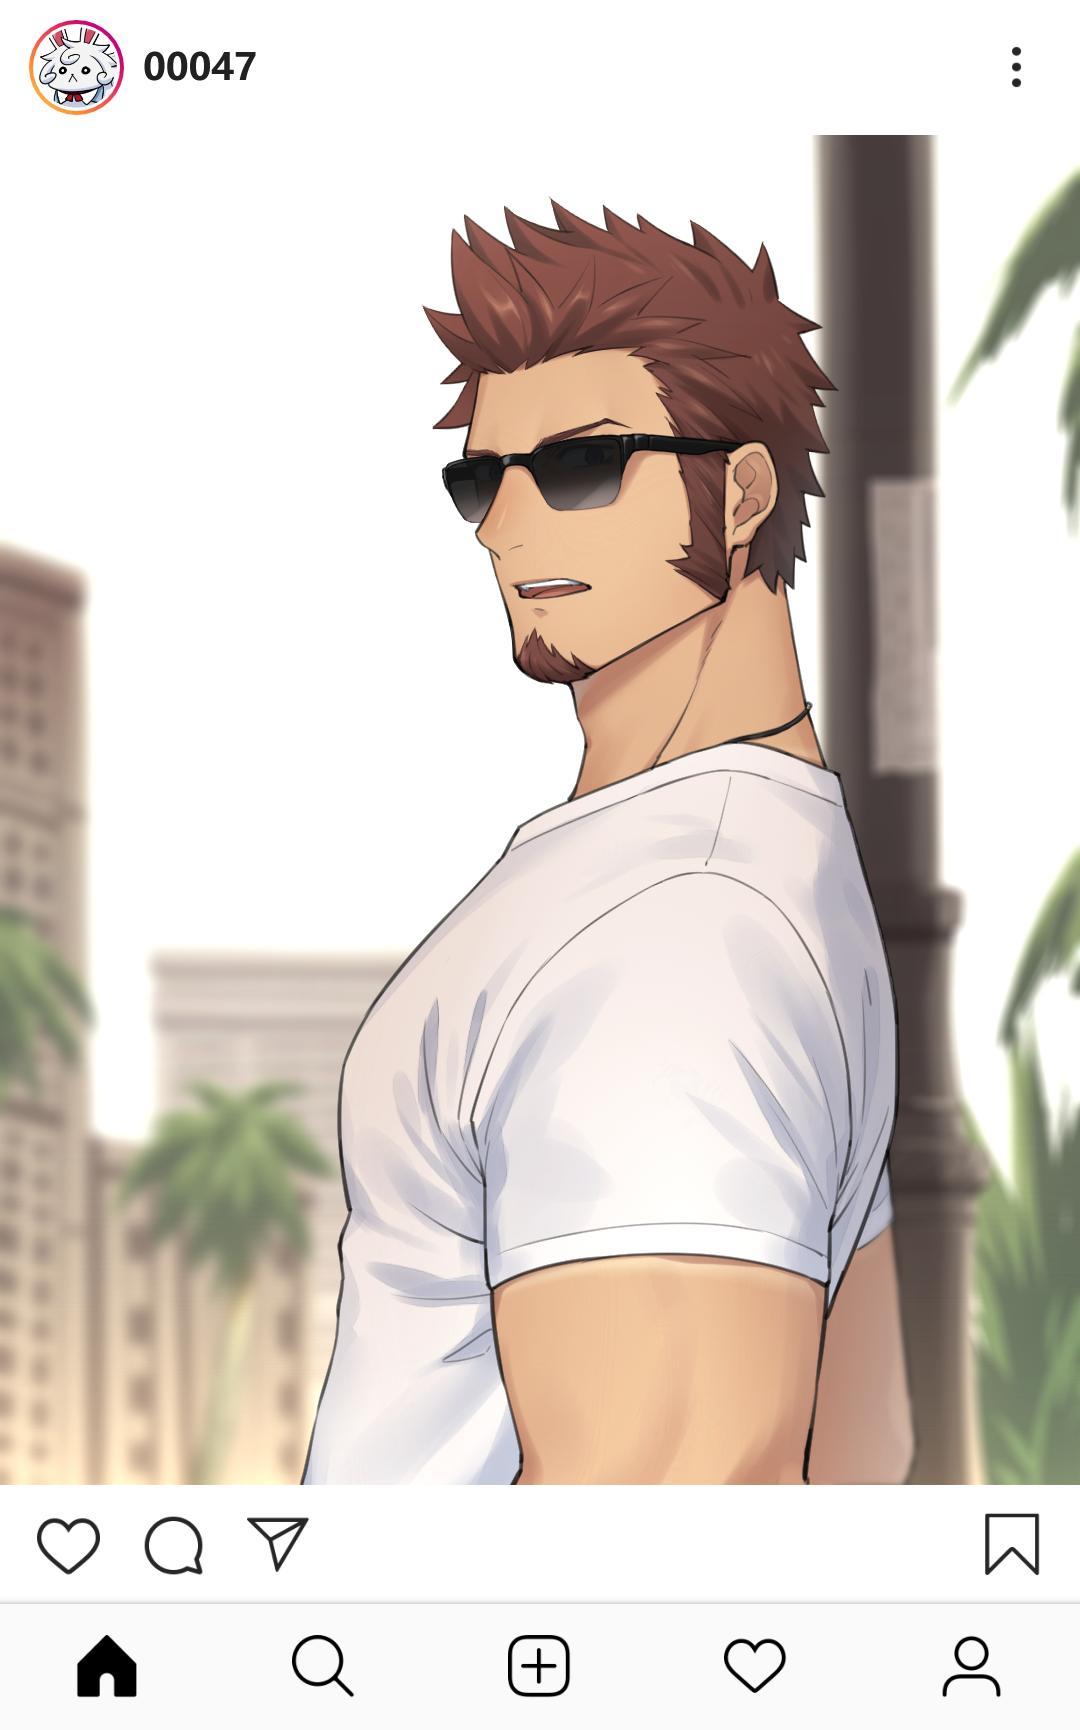 1boy 47_(479992103) beard biceps blue_eyes brown_hair chest facial_hair fate/grand_order fate_(series) glasses highres looking_at_viewer male_focus muscle napoleon_bonaparte_(fate/grand_order) open_mouth pole shirt short_sleeves sideburns simple_background solo upper_body white_shirt